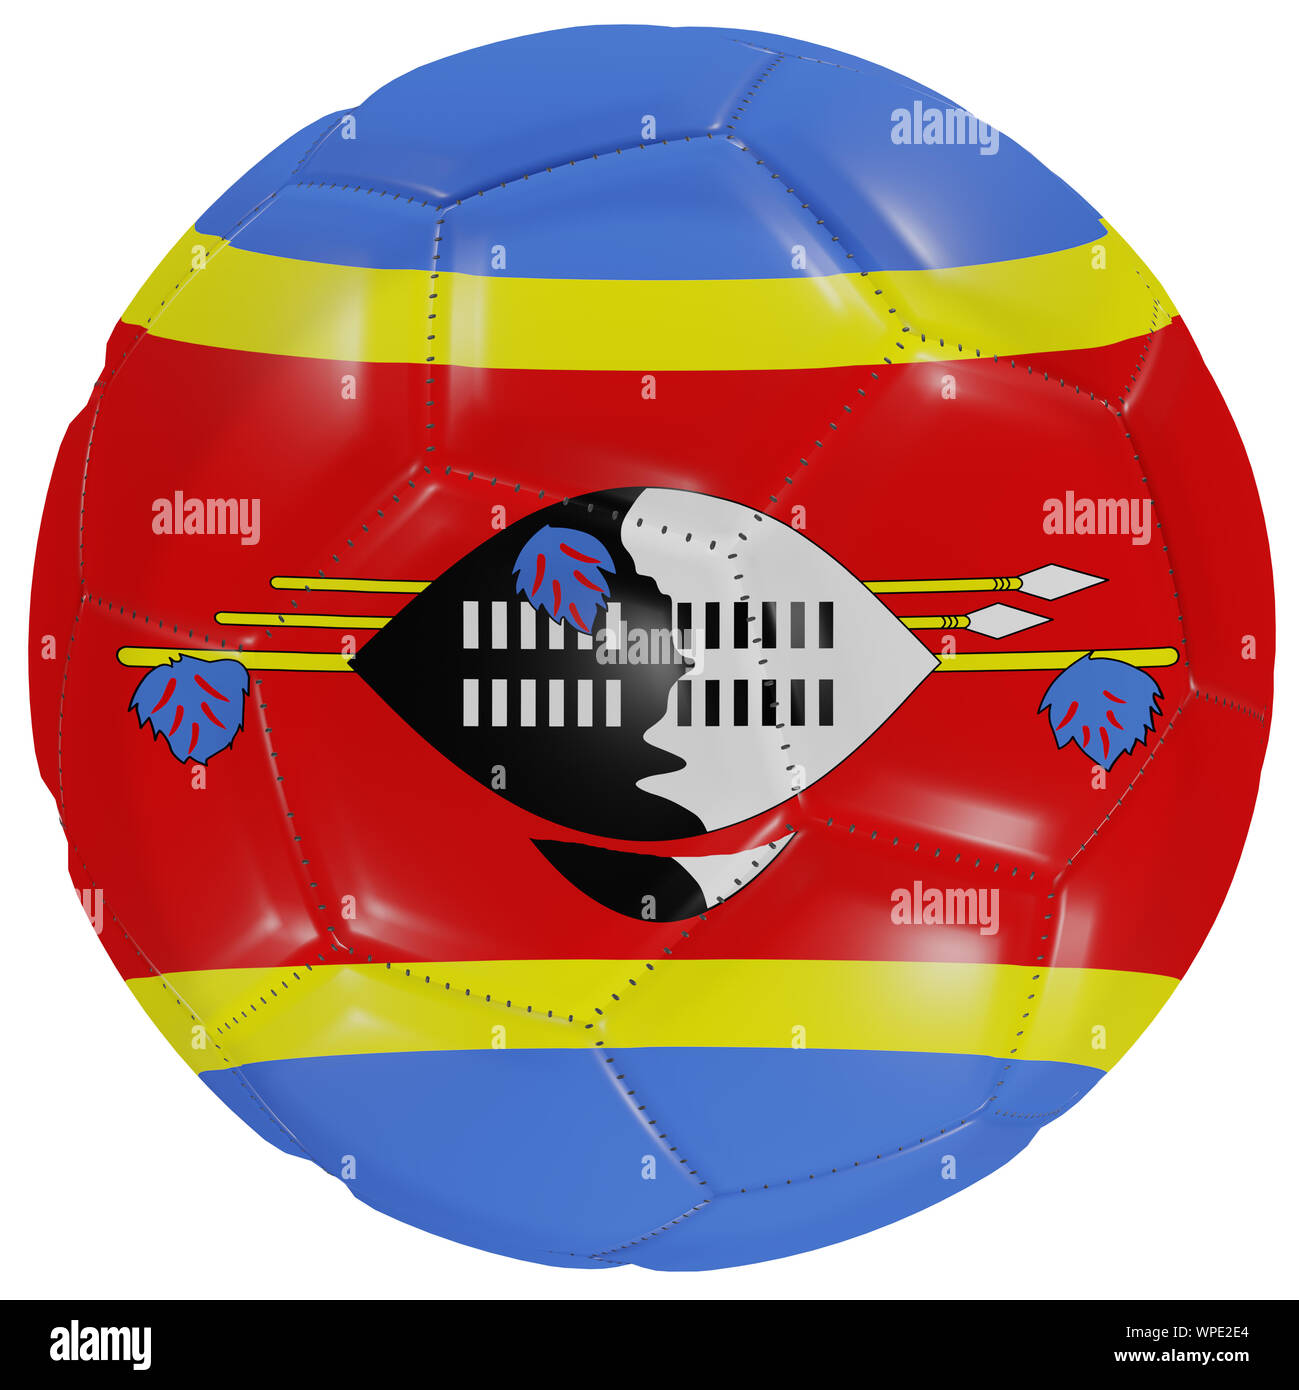 3d rendering of a Swaziland flag on a soccer ball. Isolated in white background Stock Photo